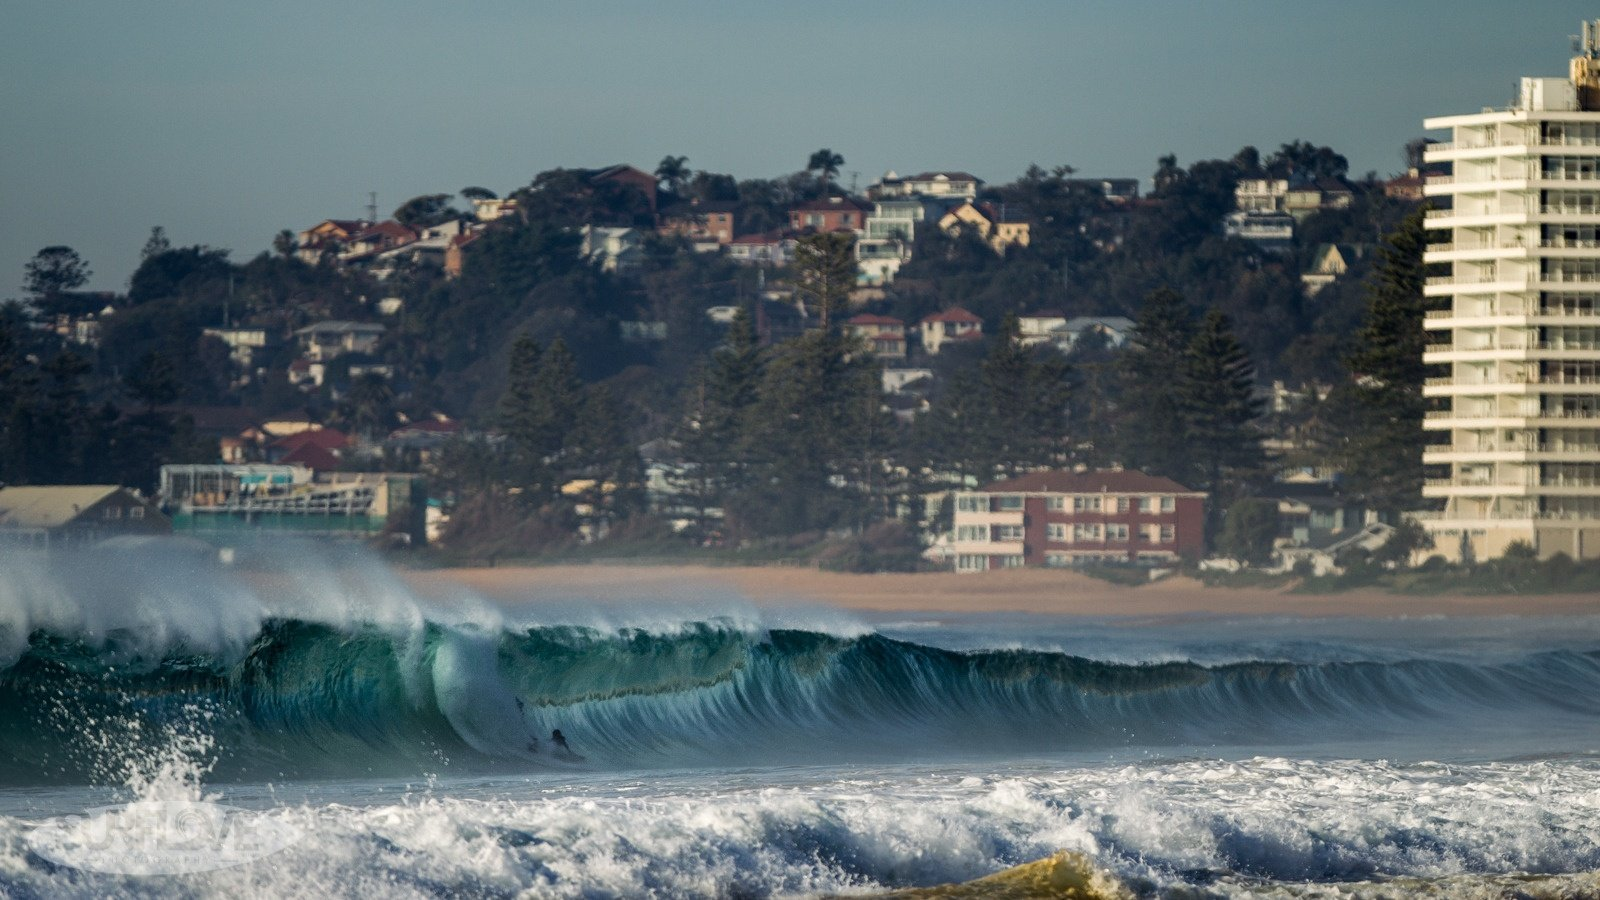 ChrisEyreWalker's photo of South Narrabeen